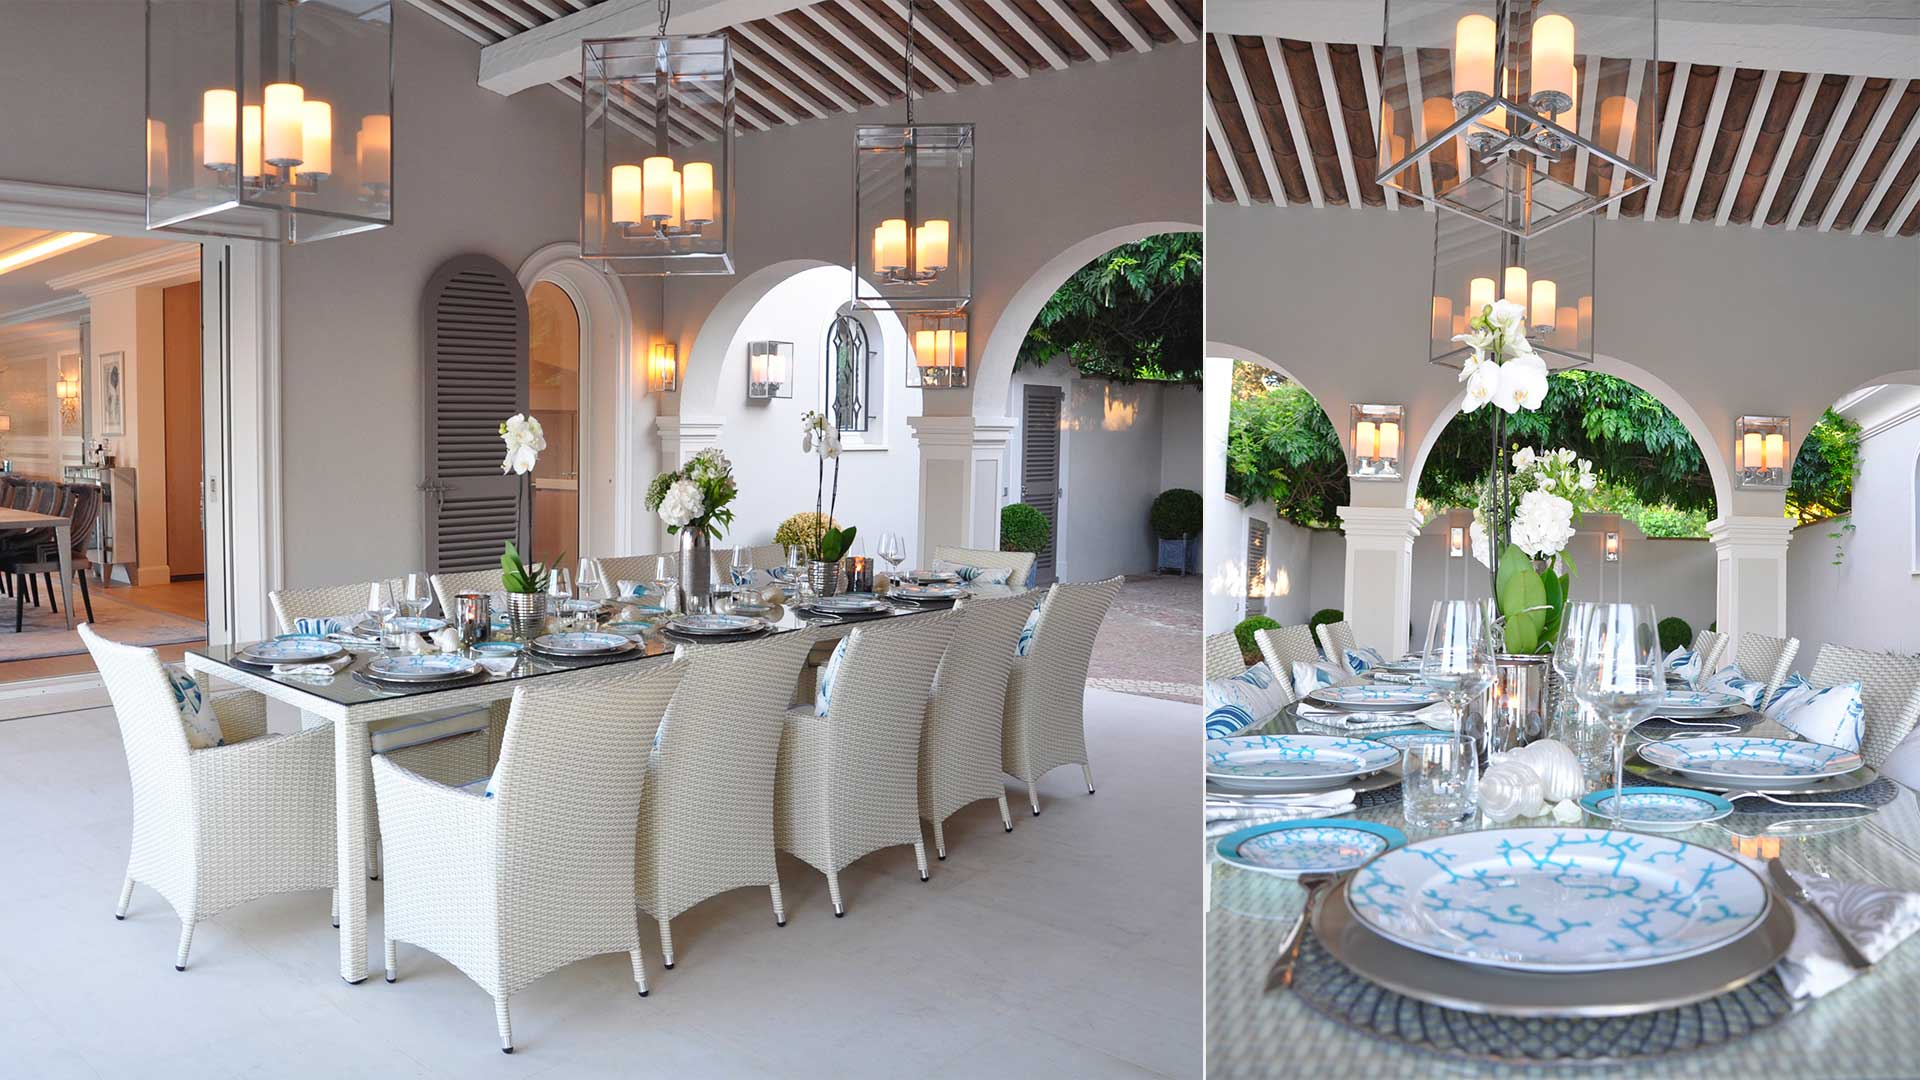 SUMMER-HOUSE-FRENCH-RIVIERA-14-Dome-interior-design-Geneve-Suisse